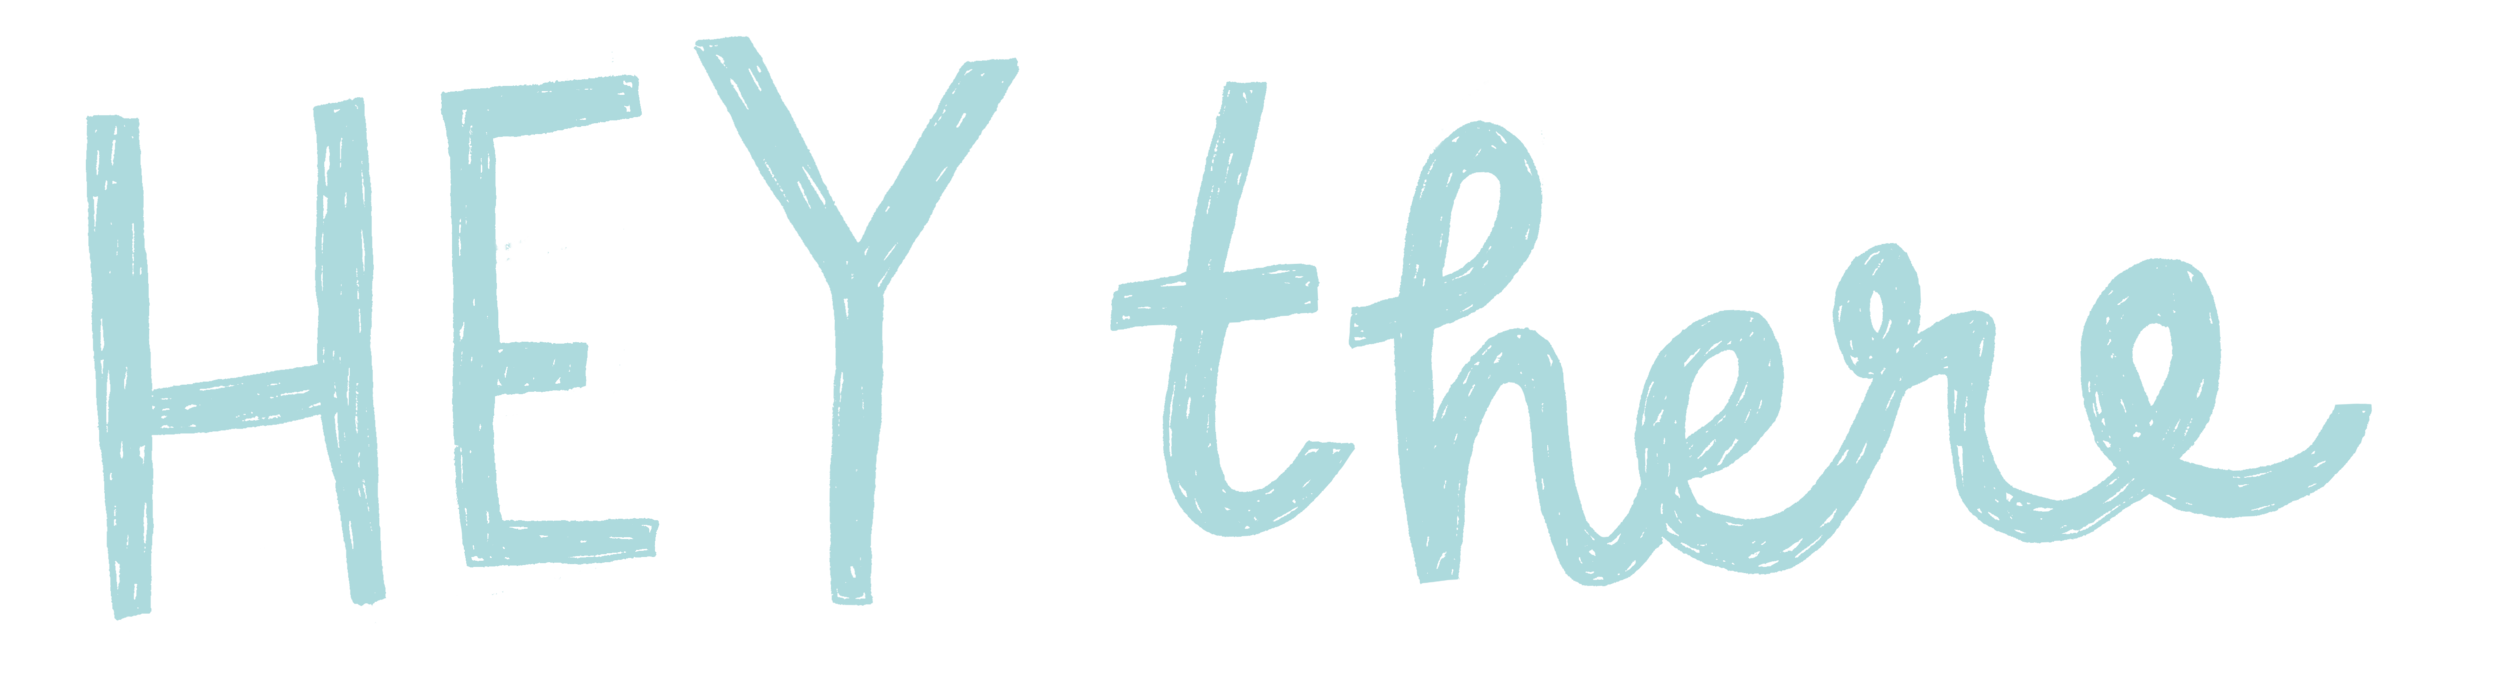 Hey there typography graphic